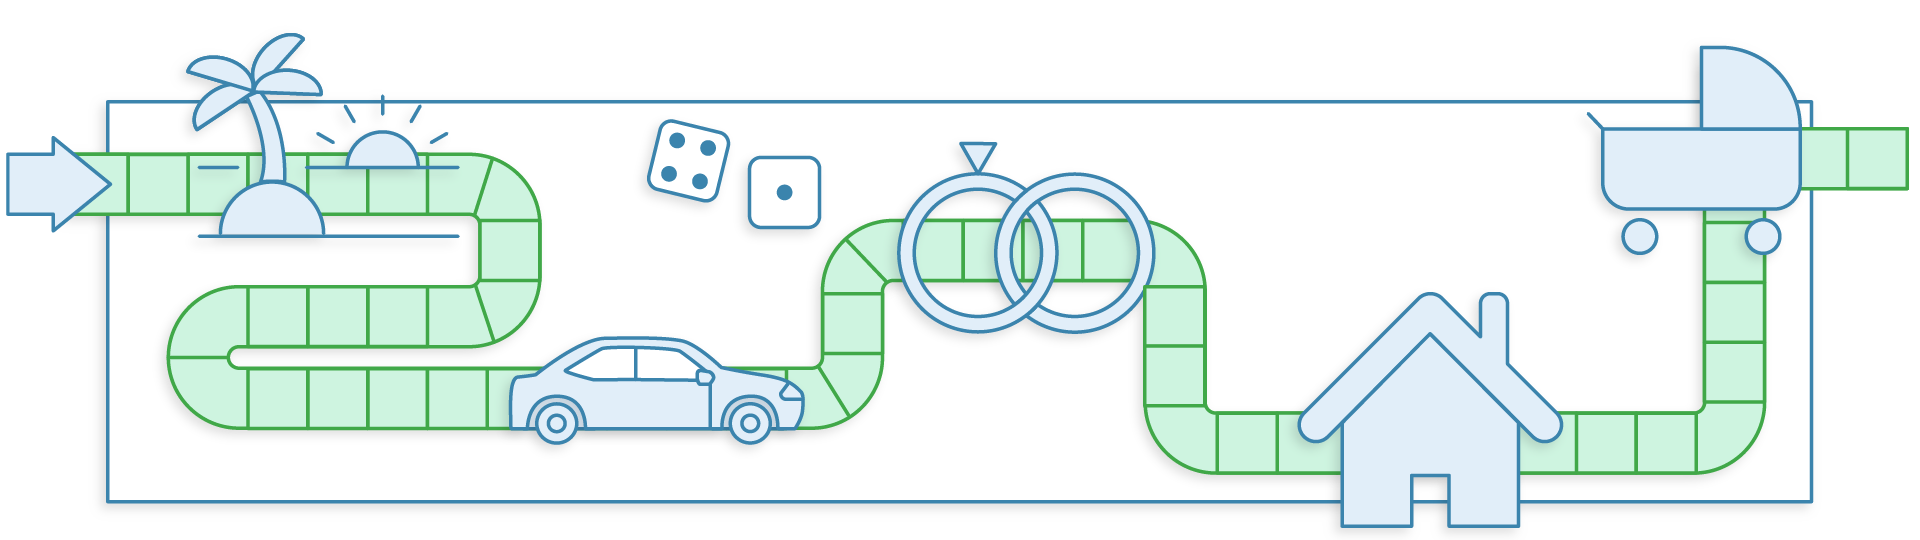 Illustration of a pathway with a car moving through vacations, marriage, home ownership, and having children